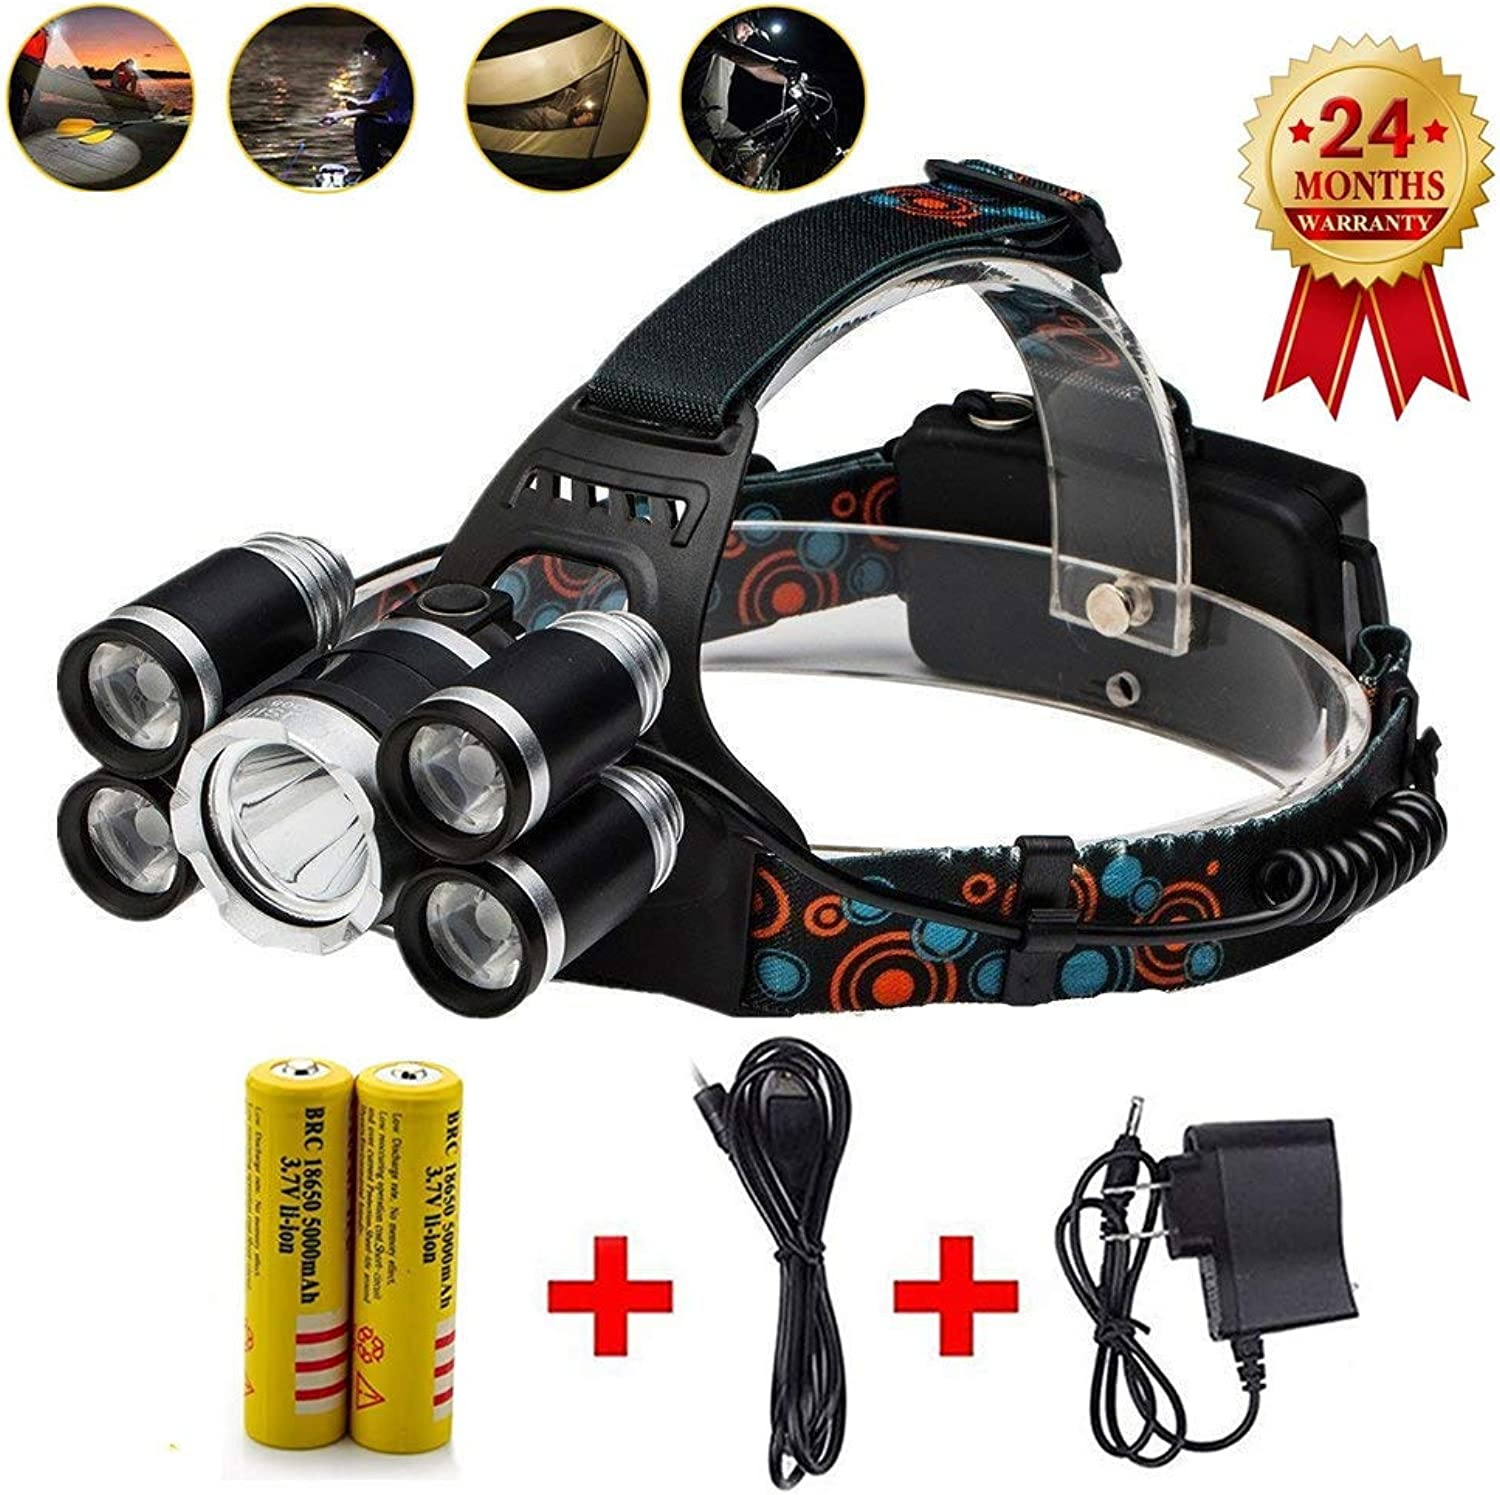 Super Bright 8000 lumens Led Headlamp Flashlight,Waterproof Hard Hat Light,5 Lamp Fishing Headlight Torch, Mproved Led with rechargeable batteries for camping travel cycling adventure(Silver)